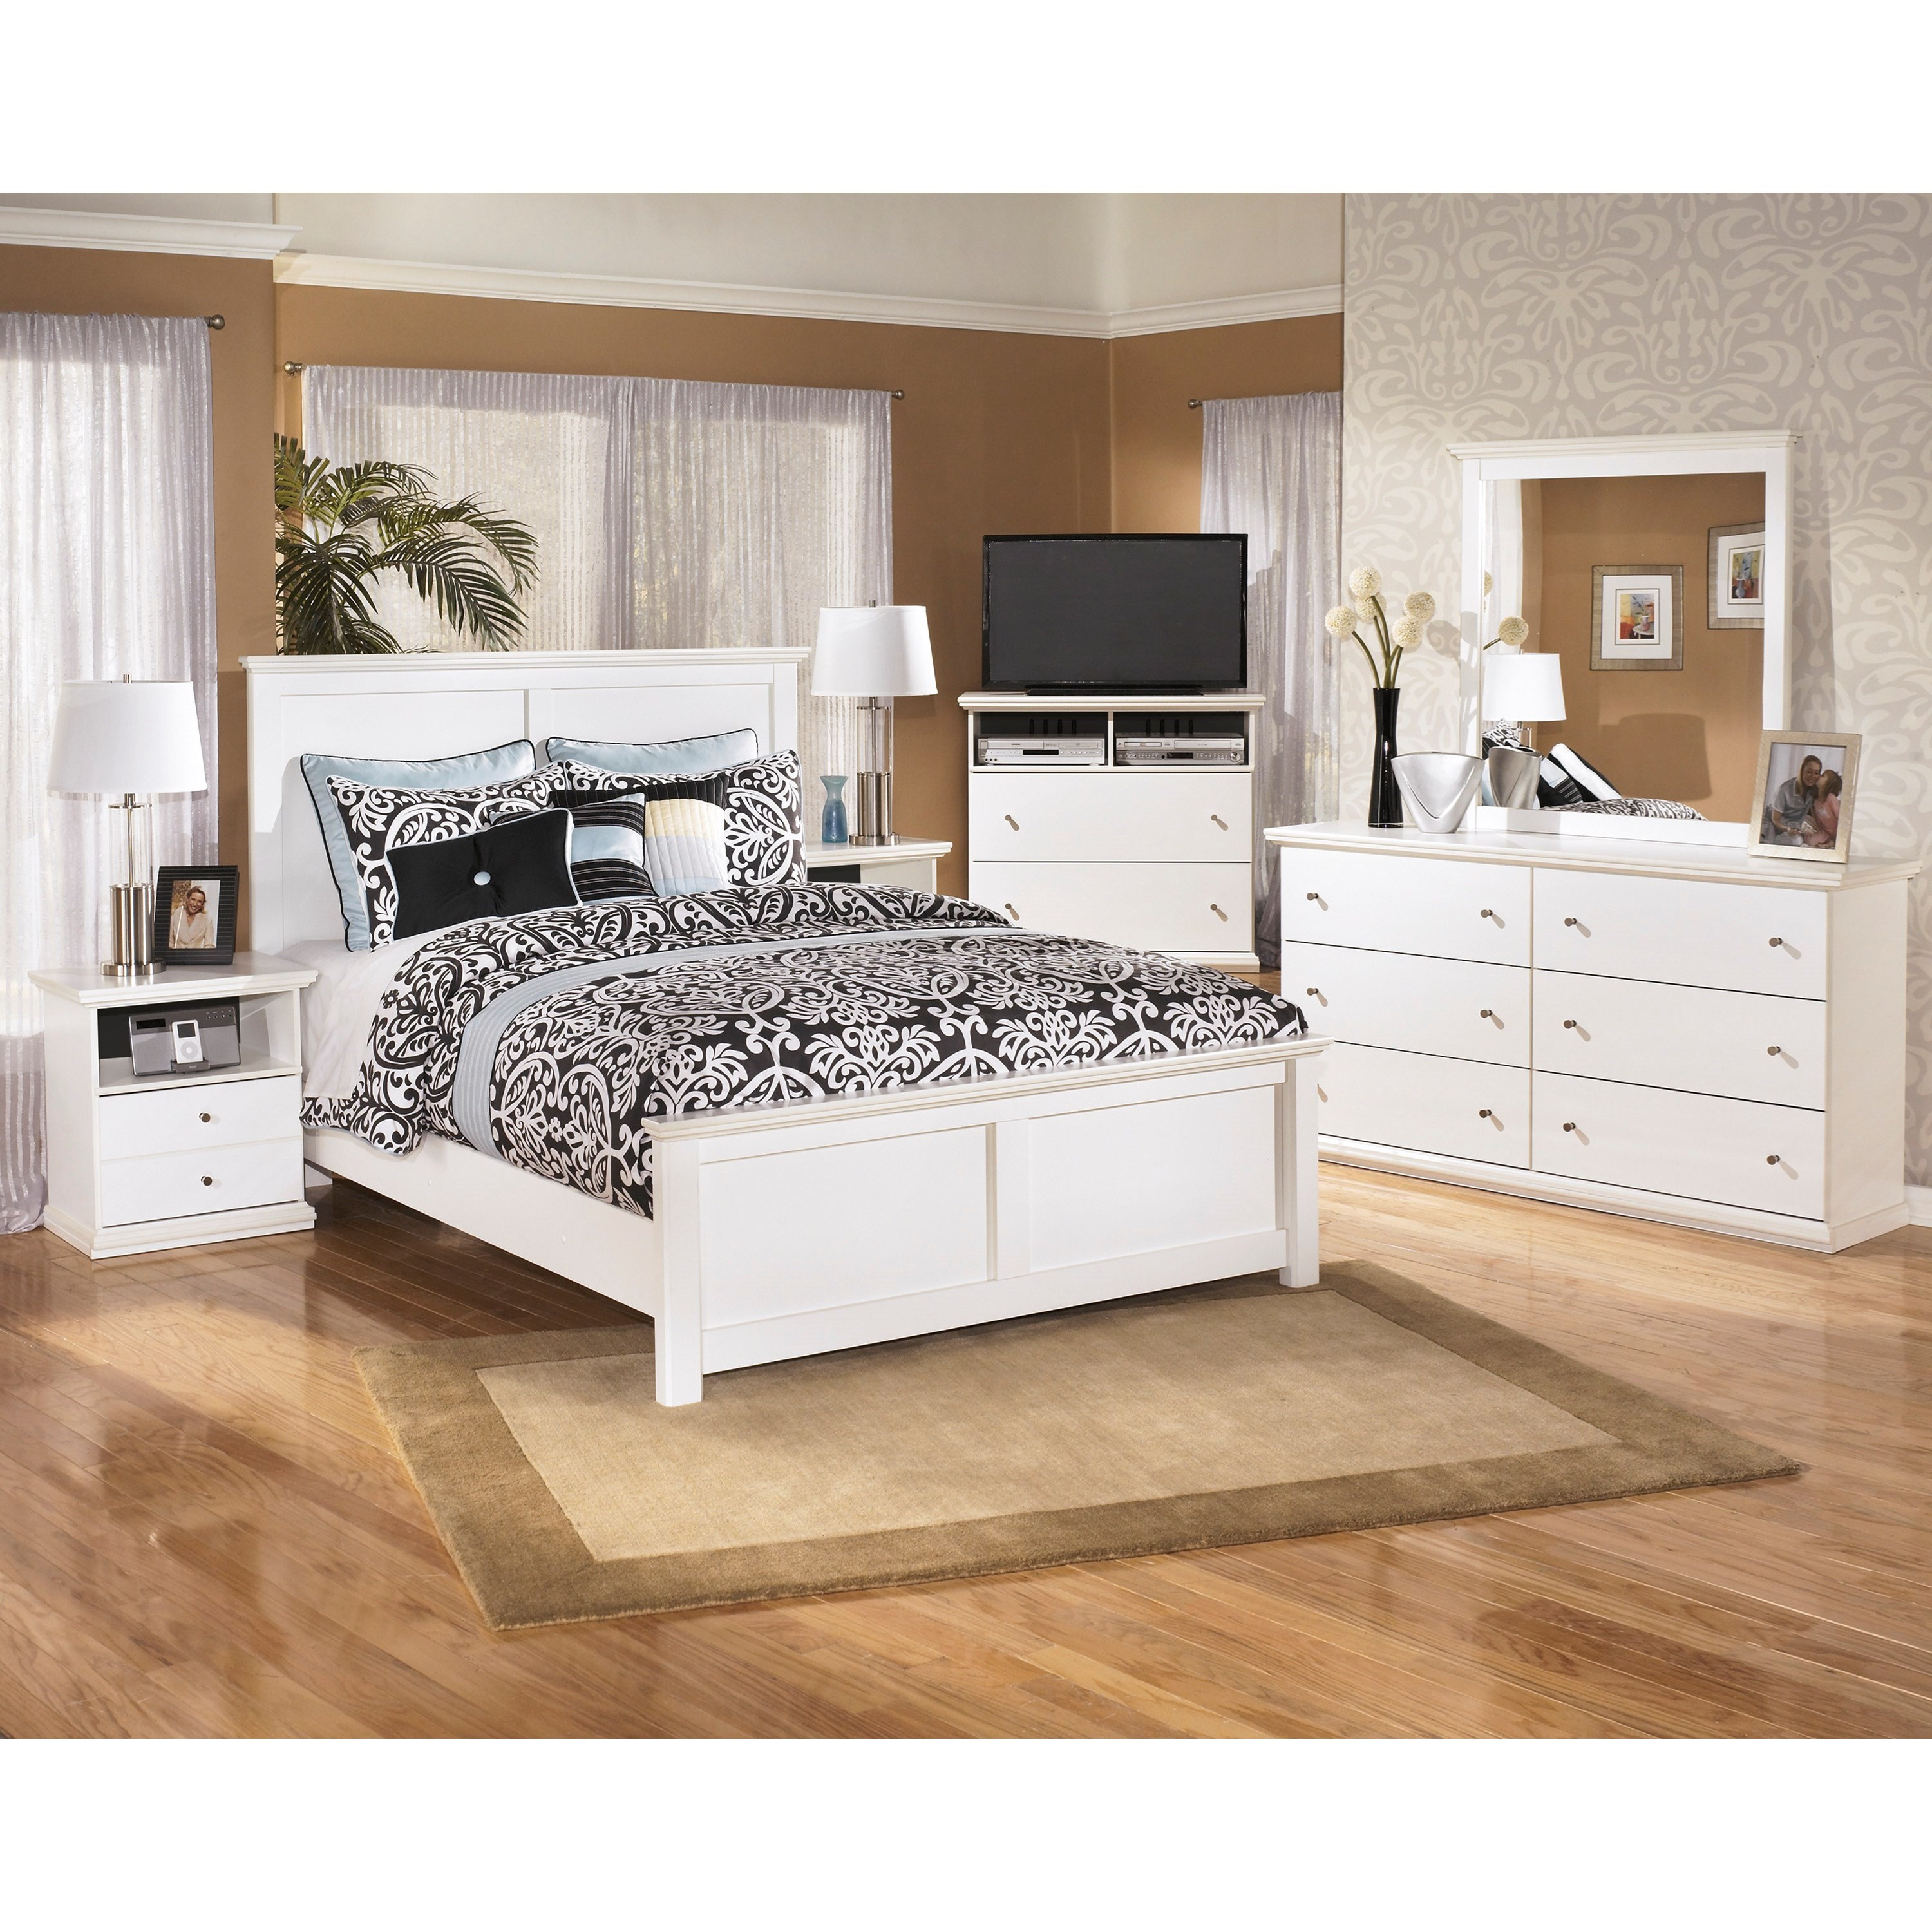 Signature Design By Ashley Bostwick Shoals King Bedroom Group Wayside Furniture Bedroom Groups